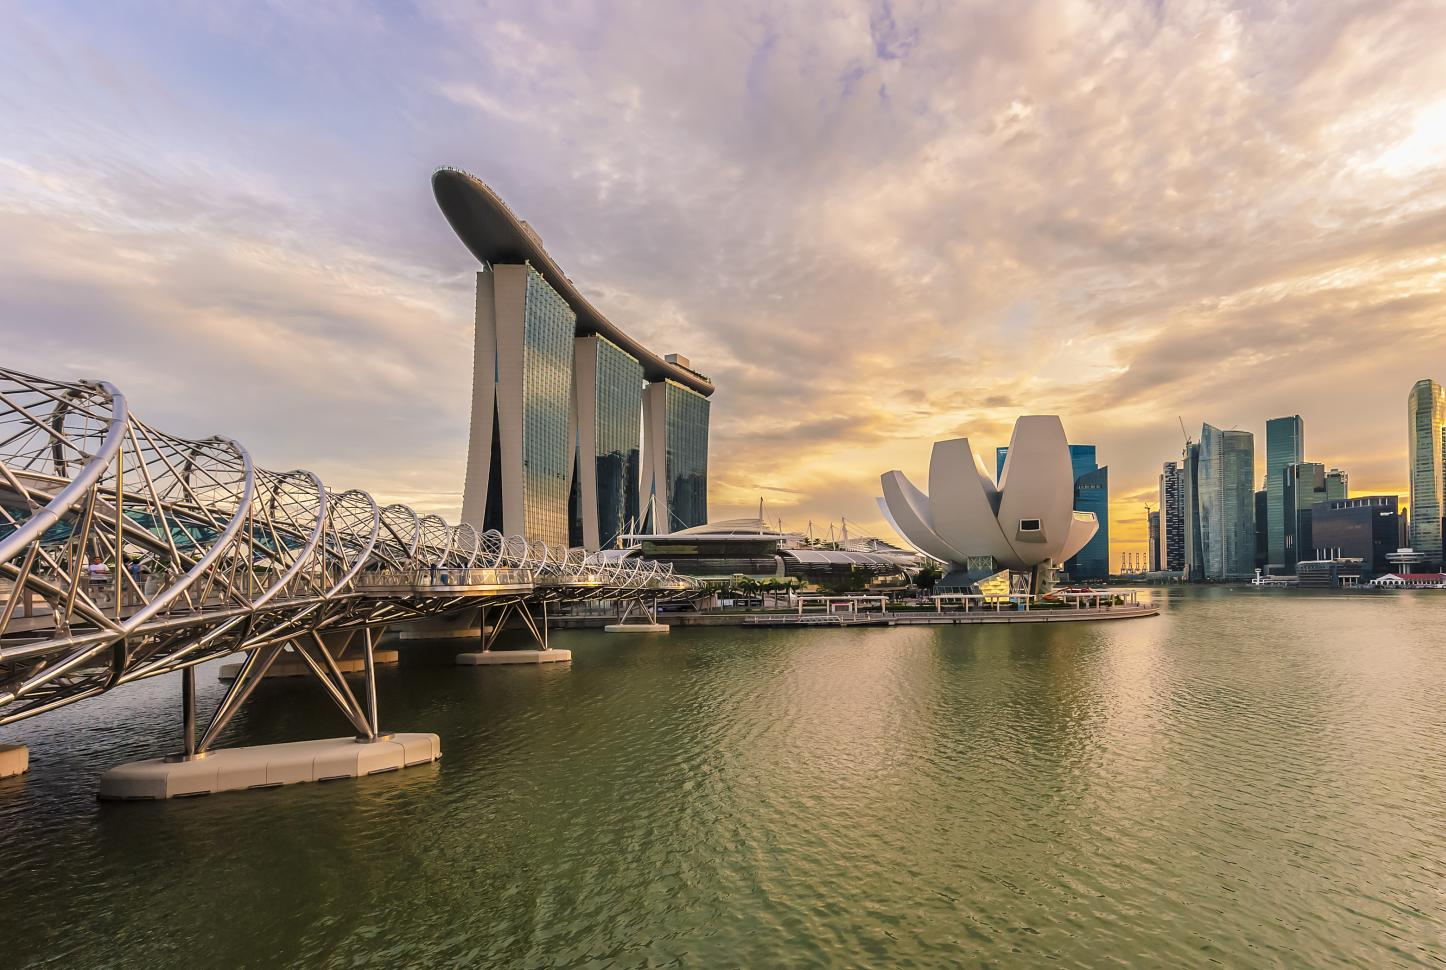 The Top Travel Destinations for 2022